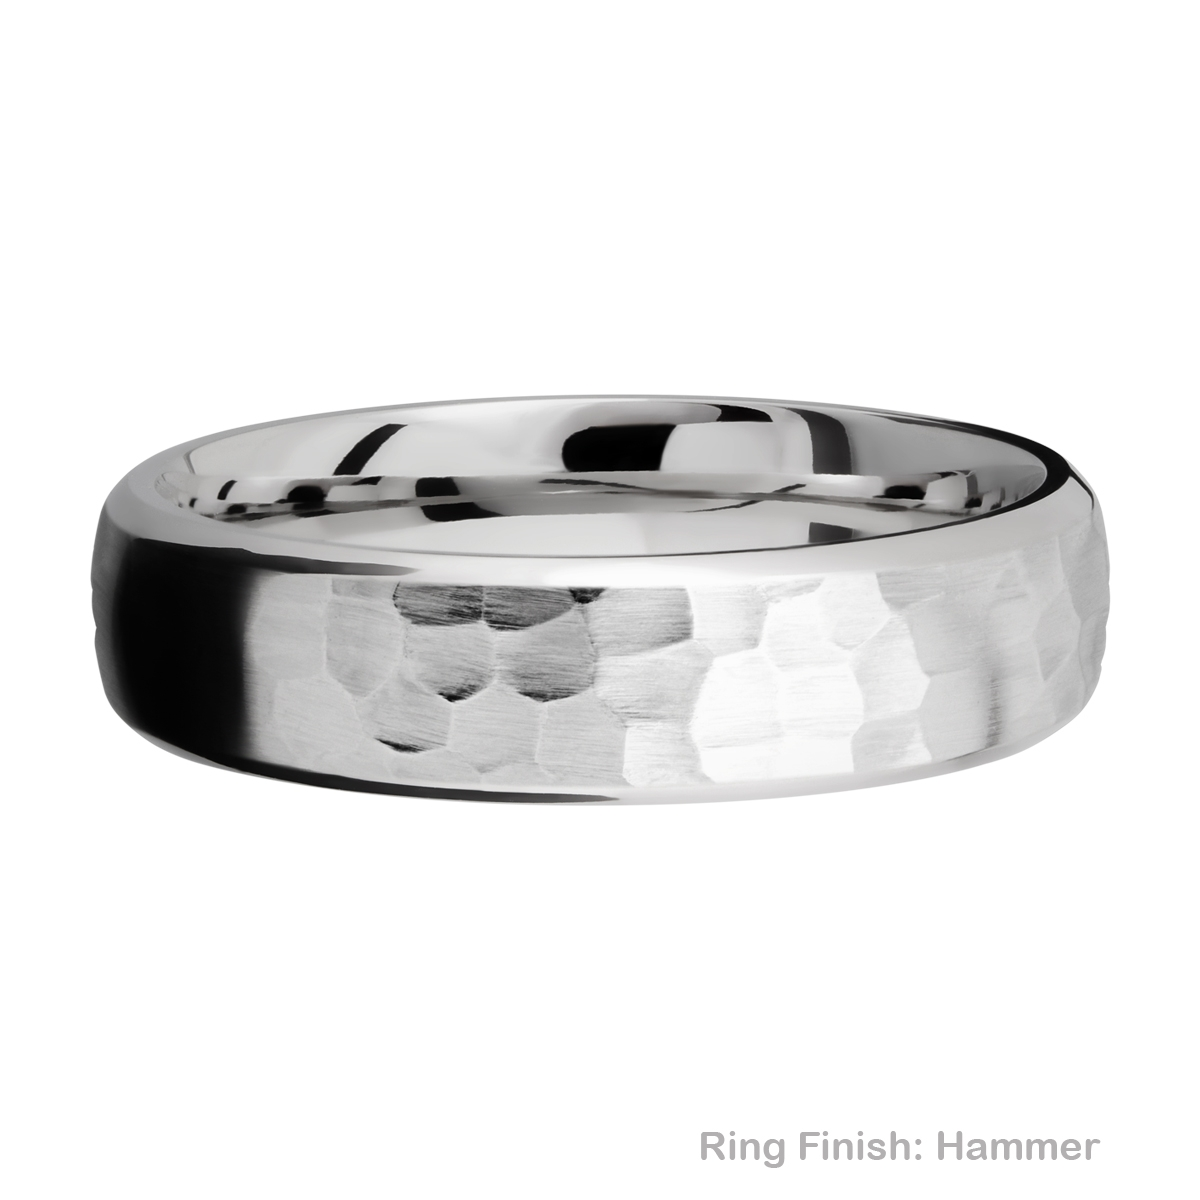 Lashbrook 6DB Titanium Wedding Ring or Band Alternative View 9